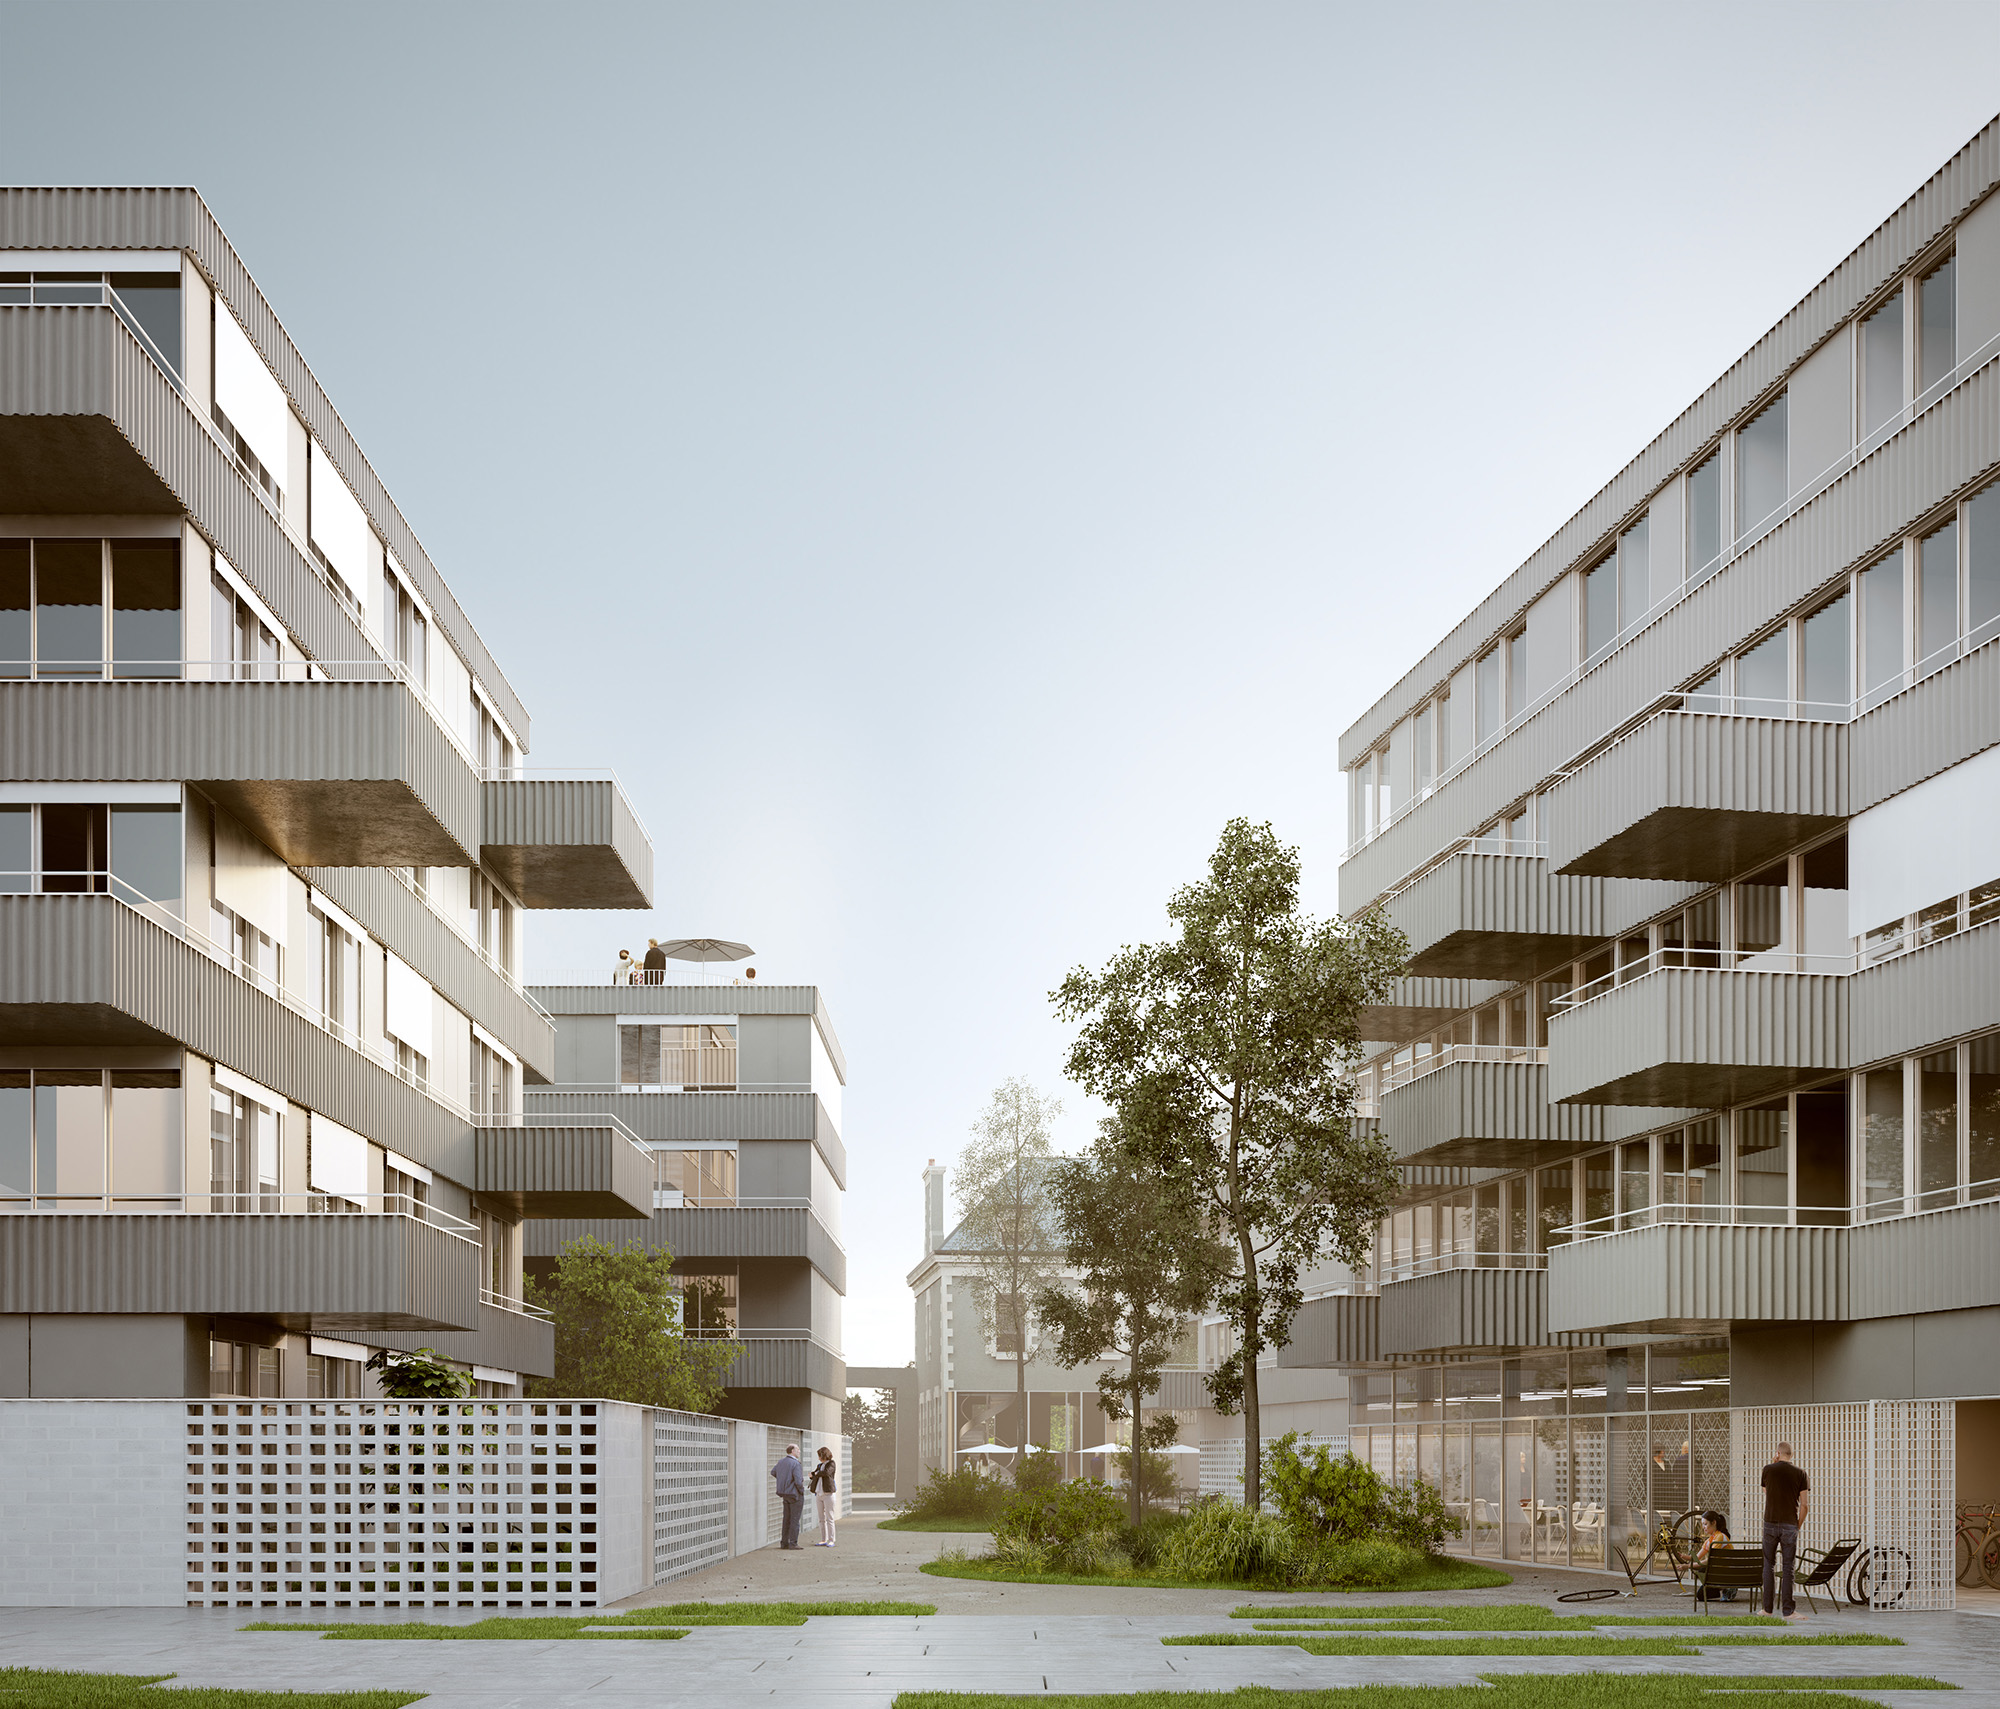 COLLECTIVE HOUSING UNITS - ATELIERS NORMANDS - 2